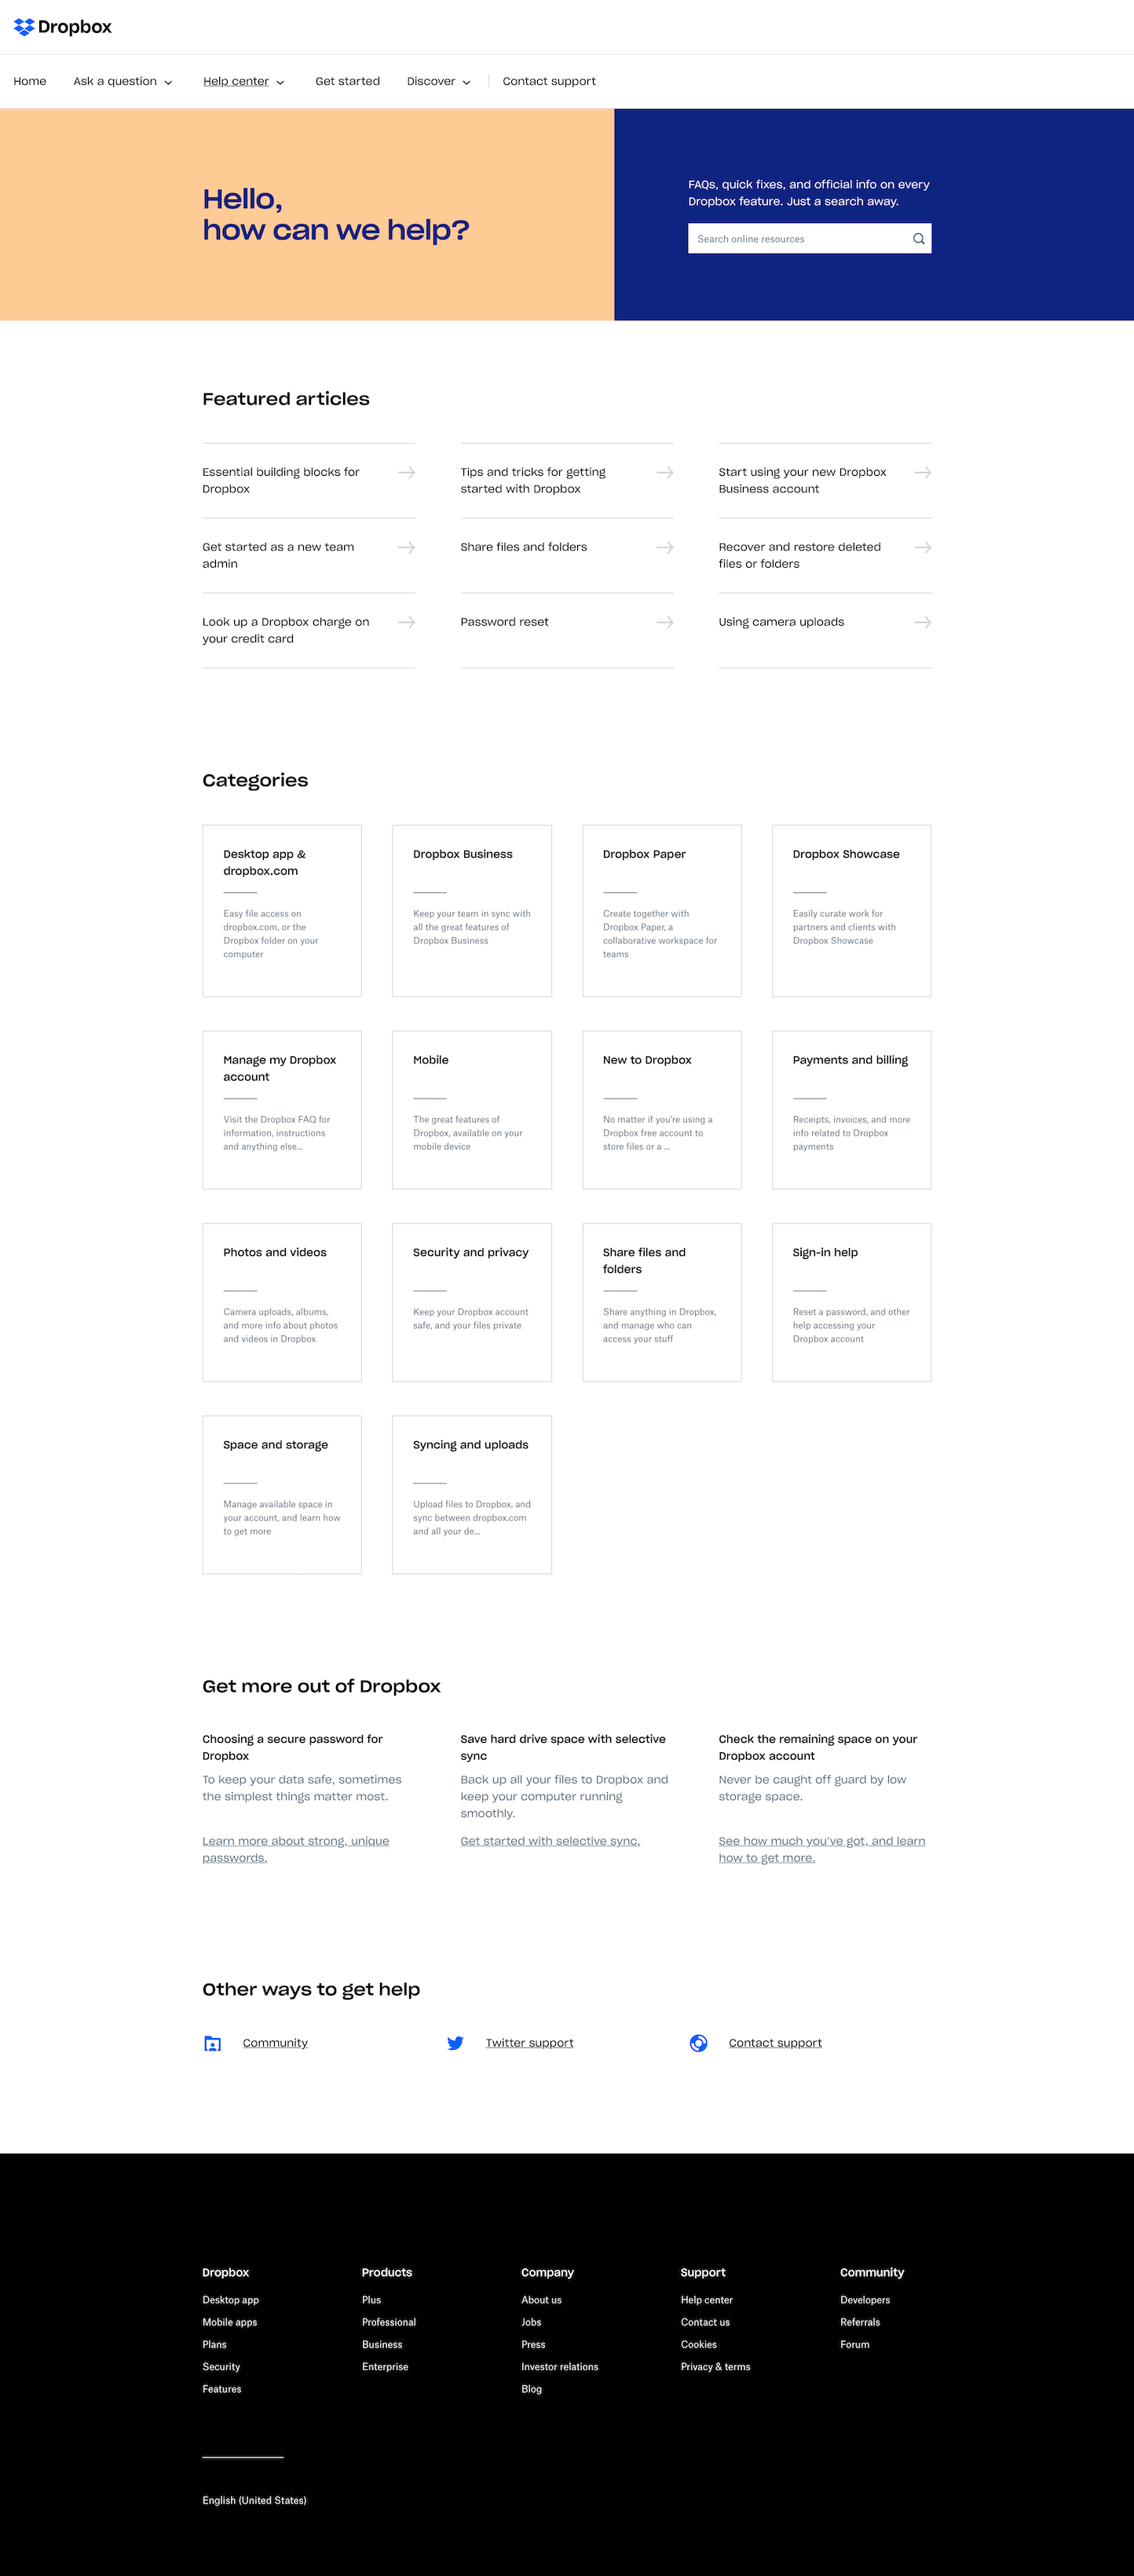 Screenshot of the Help page from the Dropbox website.